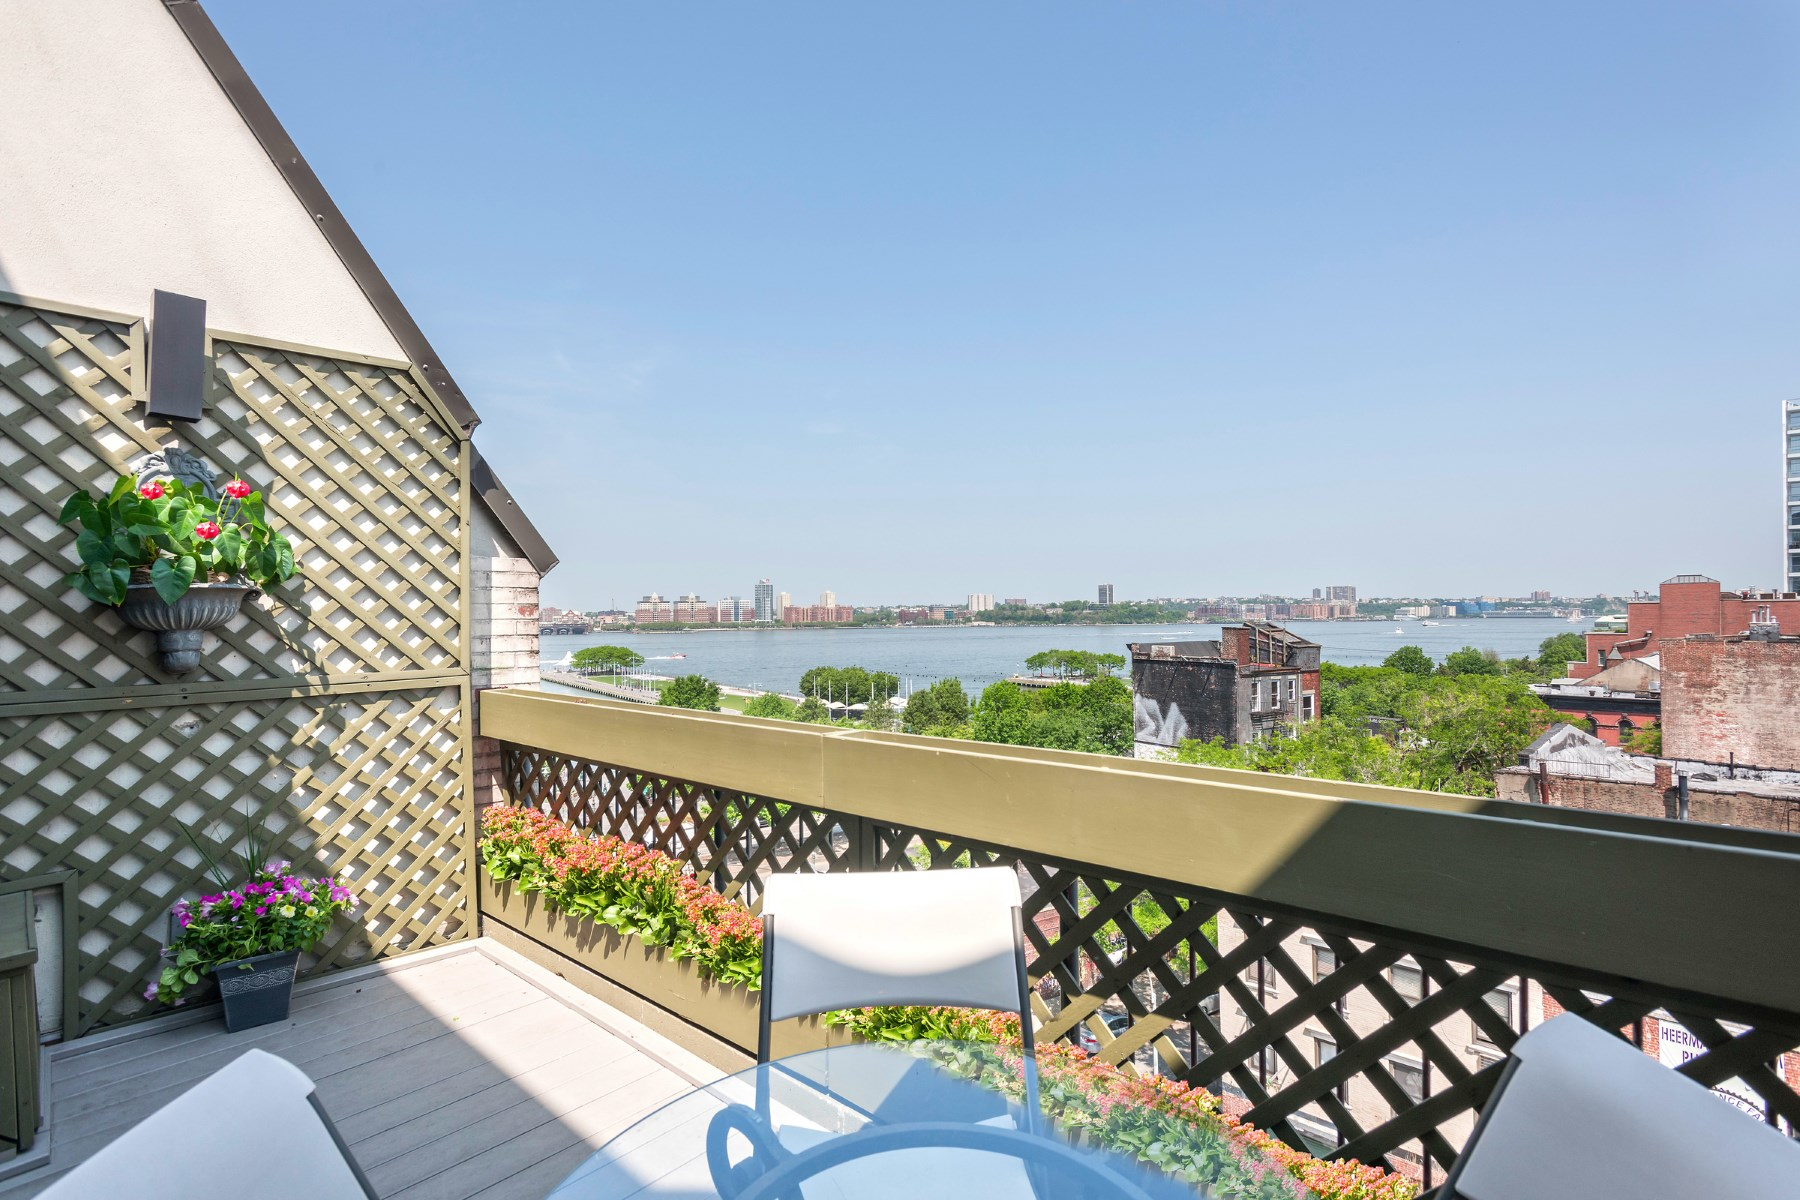 Condominio por un Venta en Feel Good PH with Terrace in W Village 130 Barrow Street PH520 West Village, New York, Nueva York, 10014 Estados Unidos